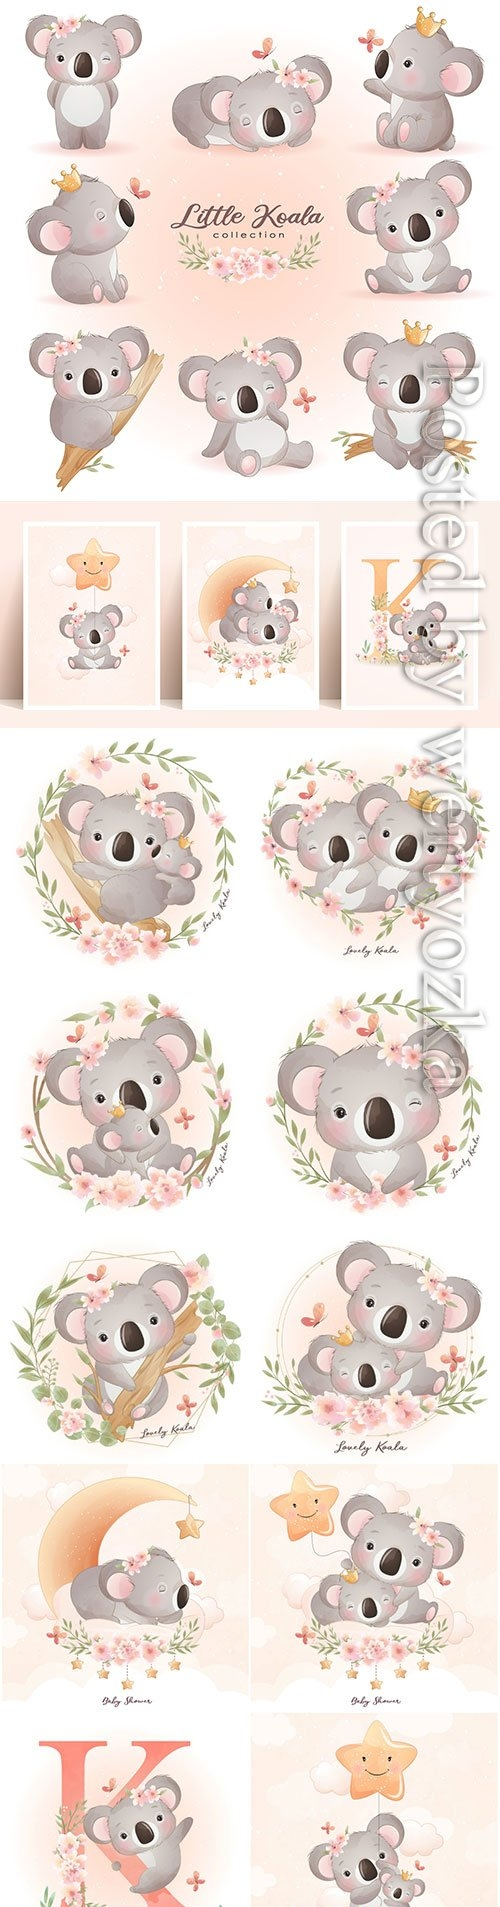 Cute doodle koala bear with floral illustration premium vector